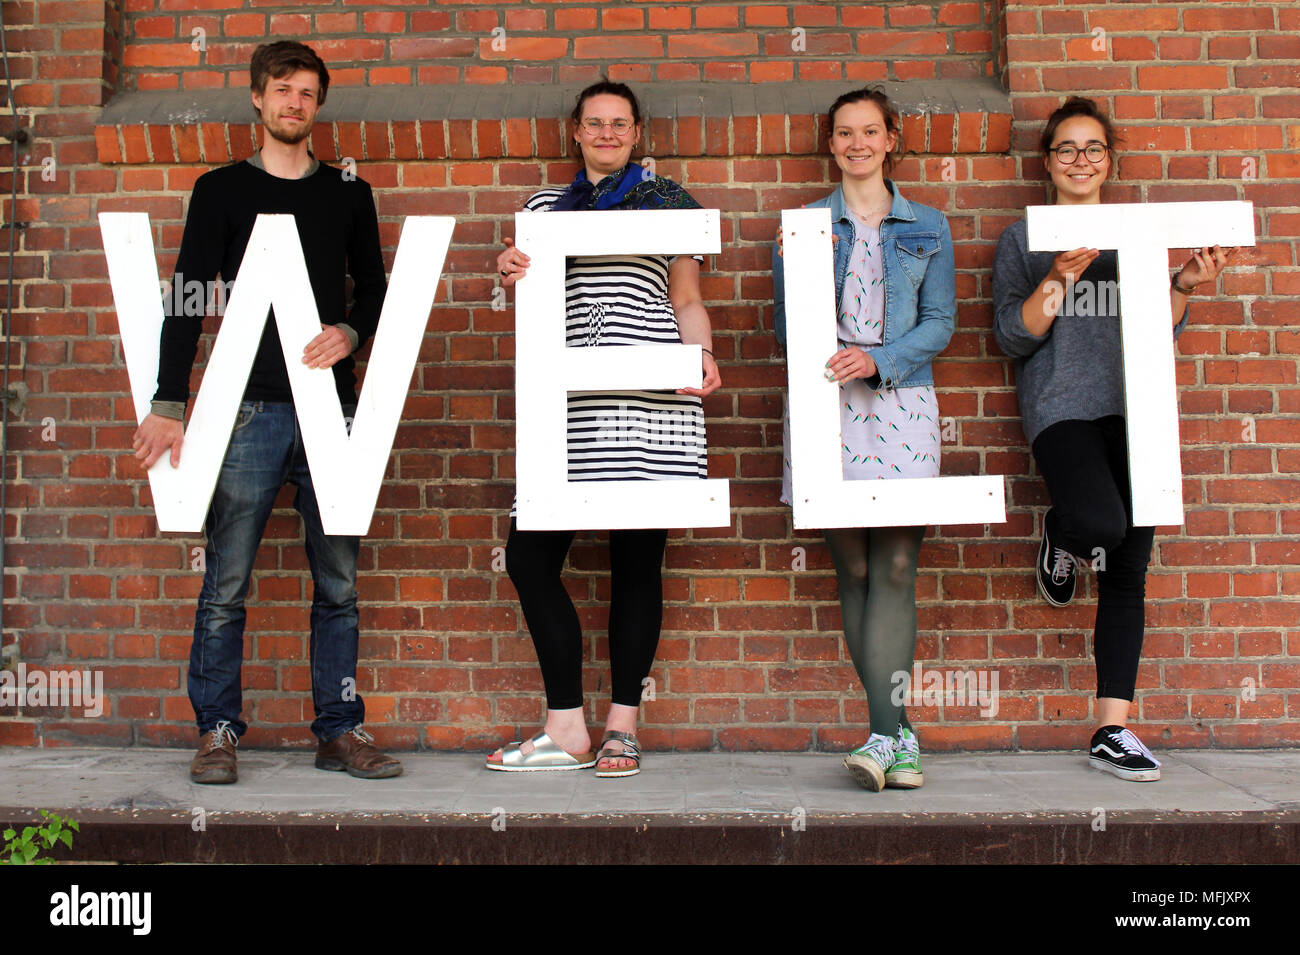 23 April 2018, Germany, Goerlitz: Students Lorenz Kallenbach (L-R), Michaela Jarosch, Lisa Schaefer and Josephine Junker holding the letters that make up the word 'Welt' (Lit. world). The students and young artist are organising the exhibition 'Weltstadt'(lit. world city Goerlitz) in an empty freight depot. Photo: Miriam Schönbach/dpa-Zentralbild/dpa - Stock Image